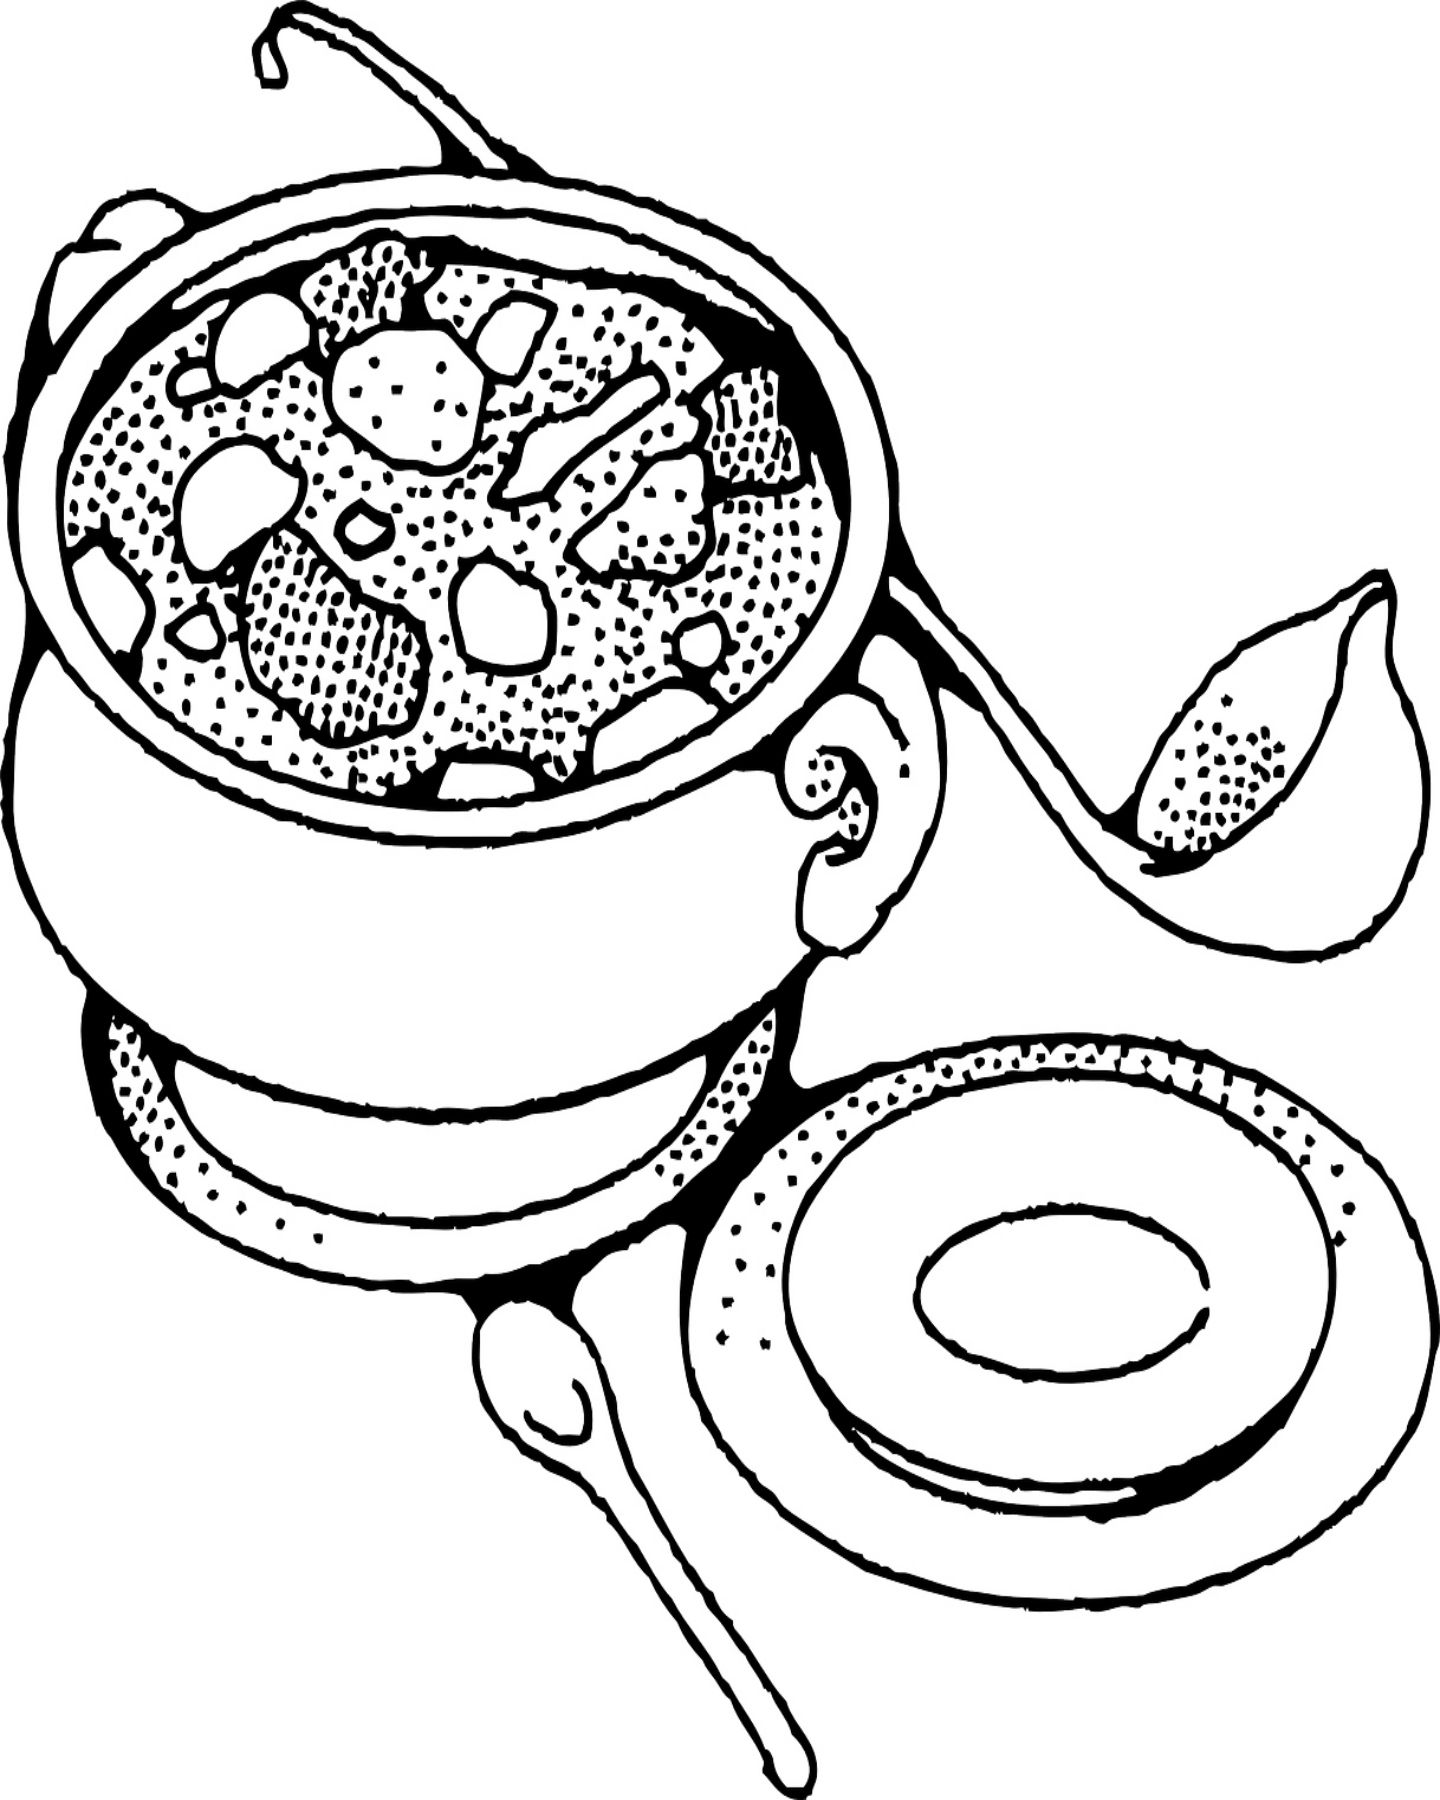 soup and sandwiches coloring pages - photo#4